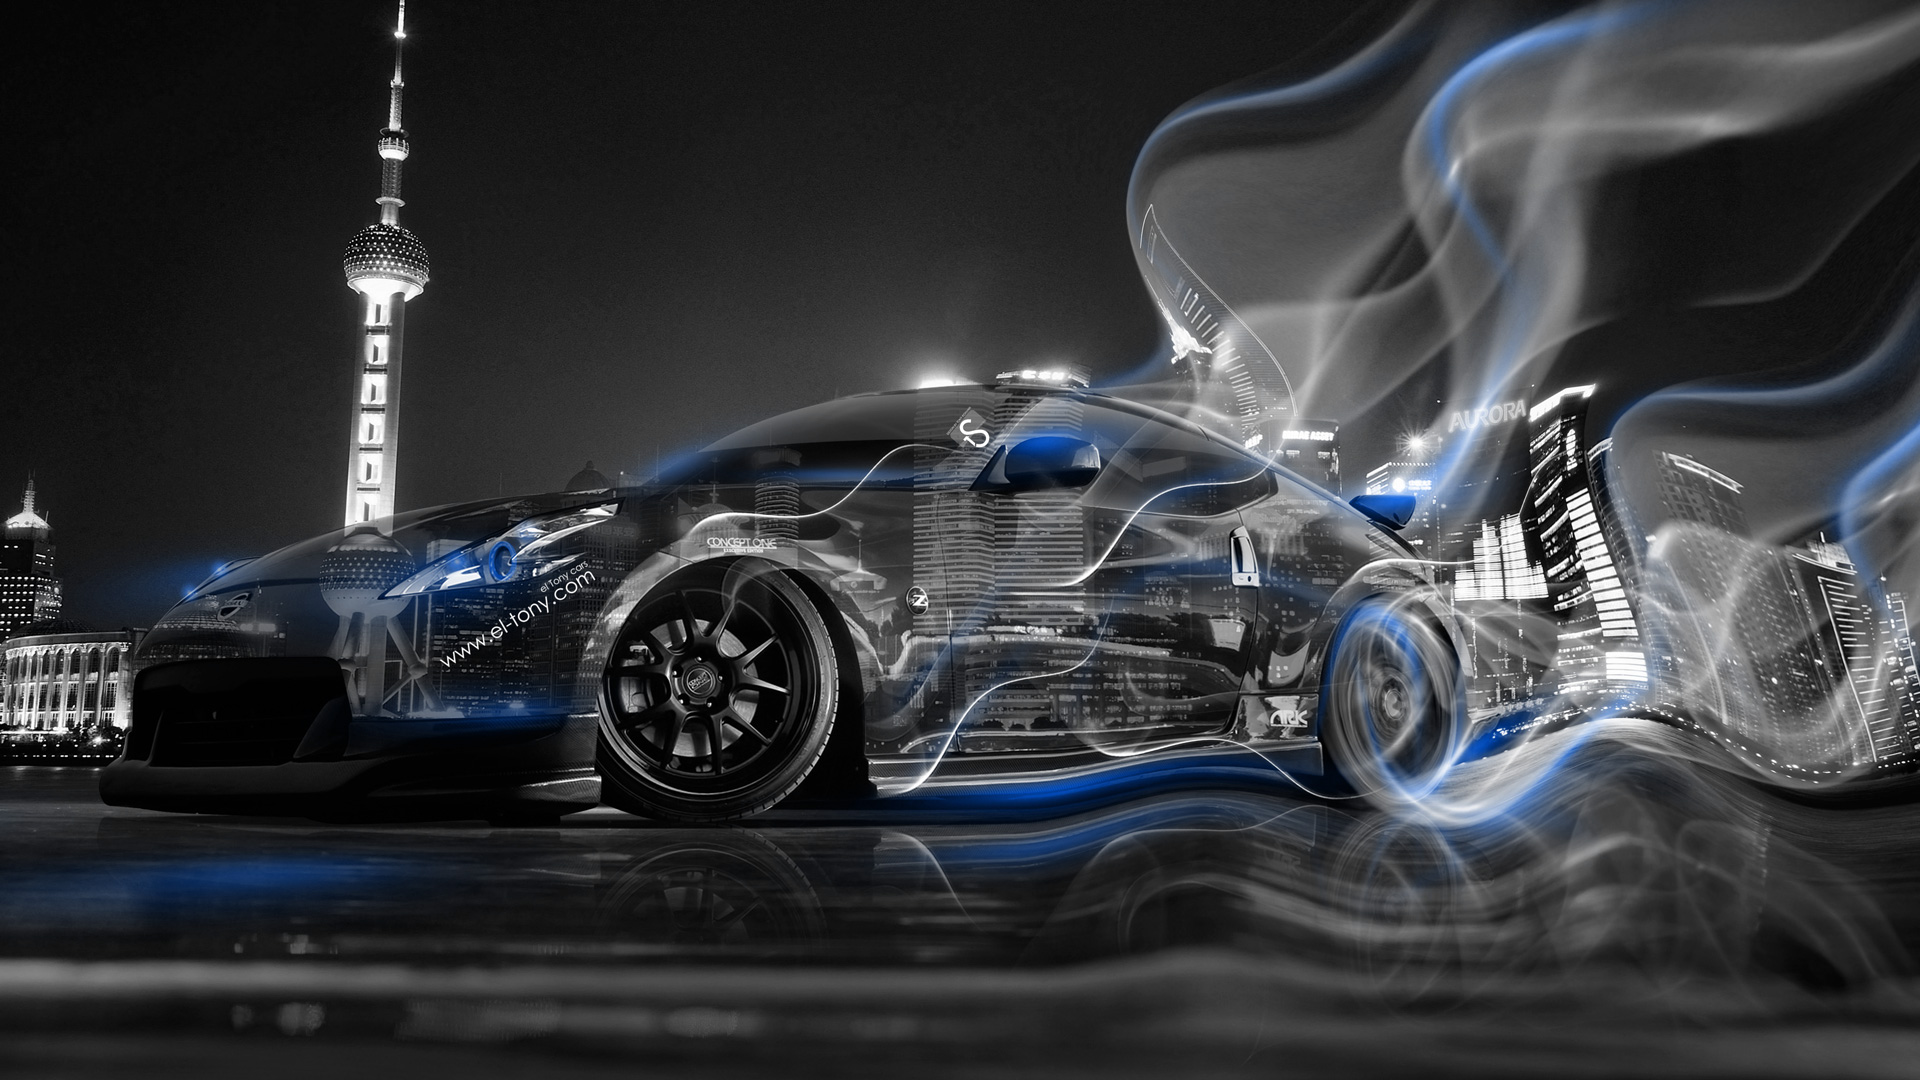 Gentil Nissan 370Z JDM Crystal City Smoke Drift Car 2014